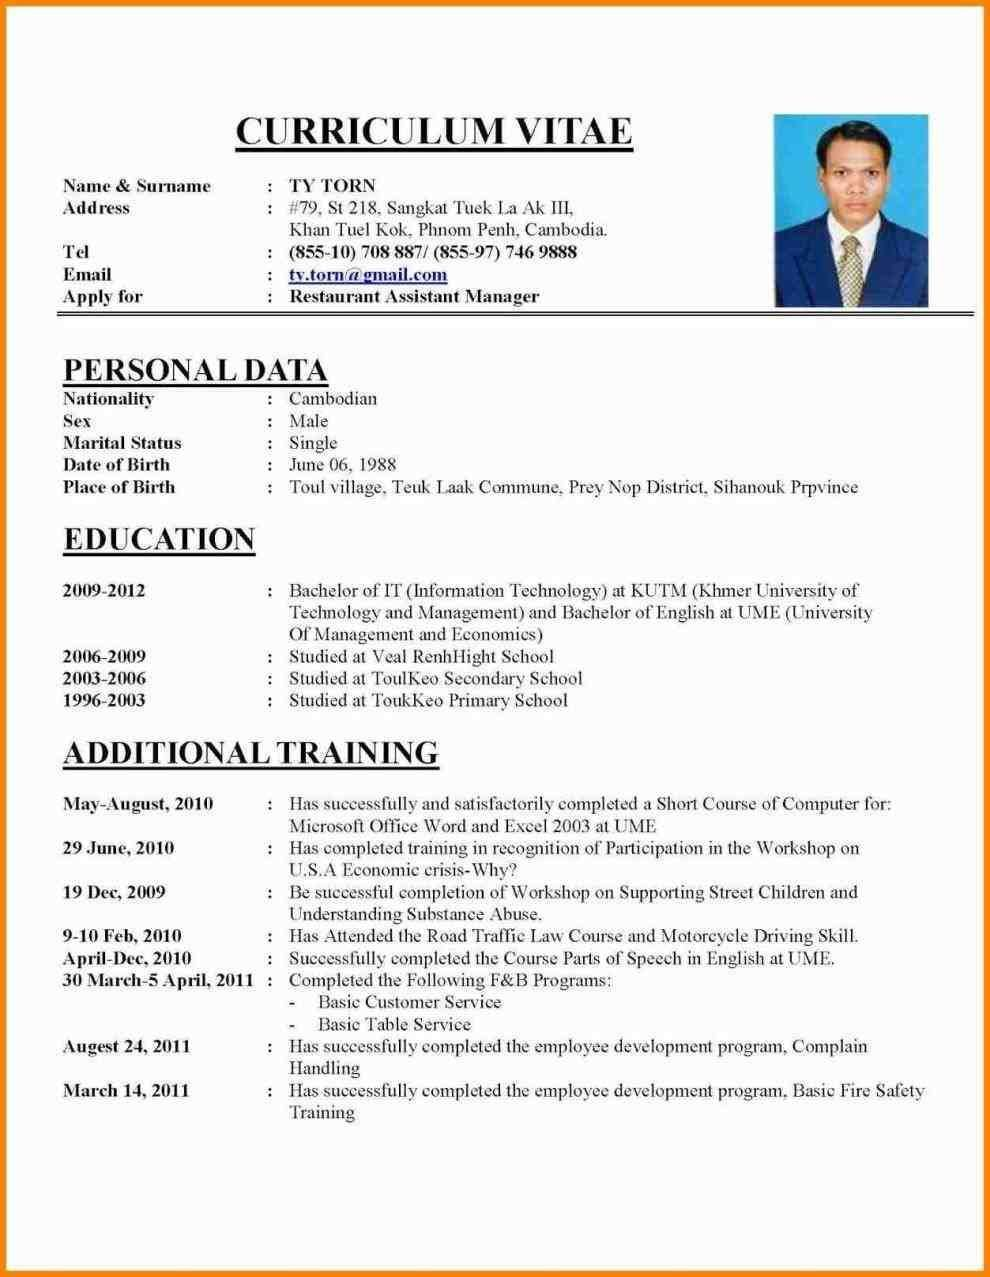 Cv Template Job Application Cv Resume Sample How To Make Resume